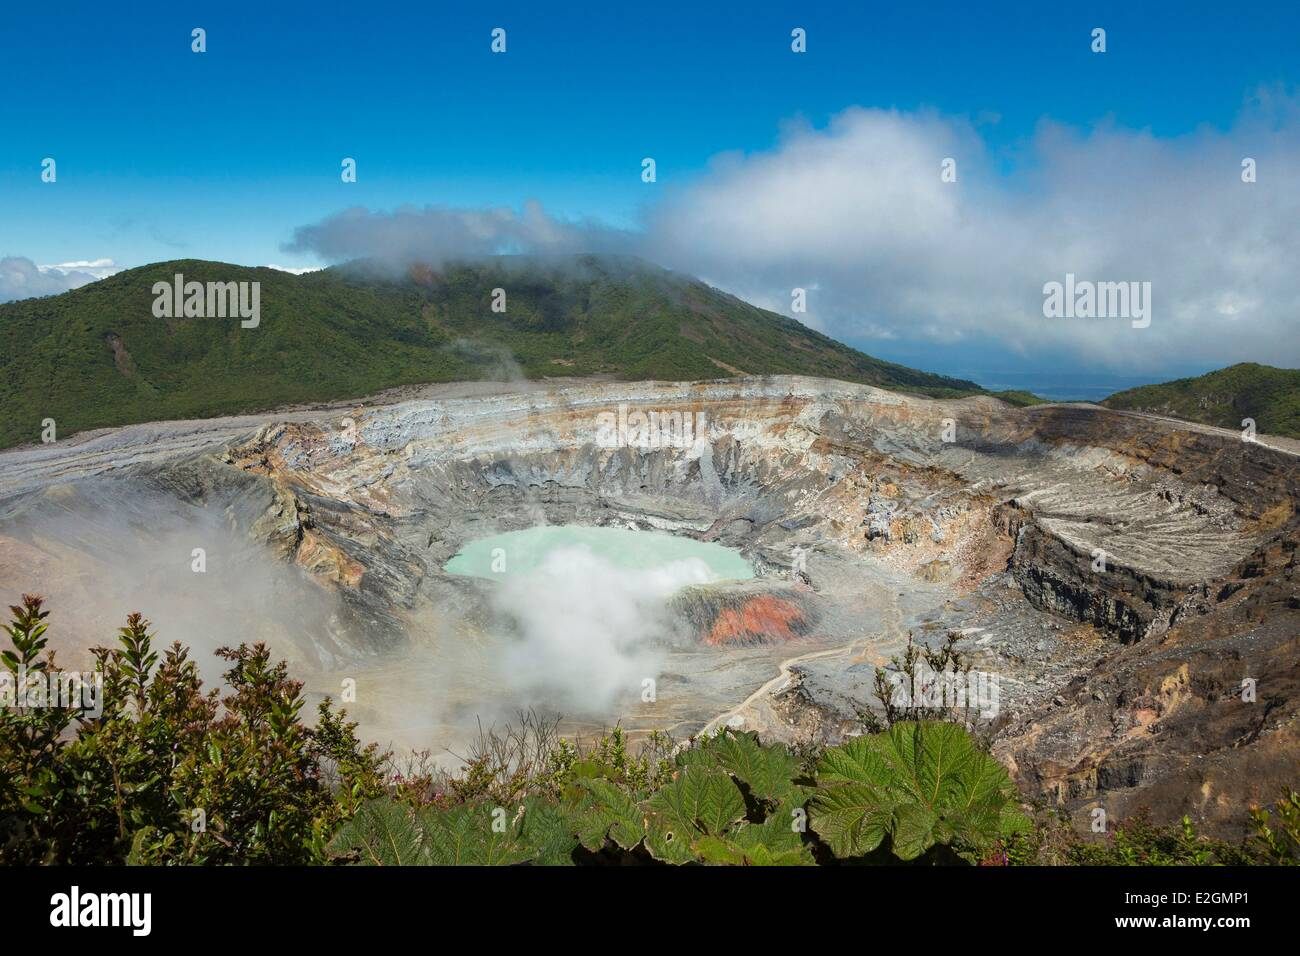 Costa Rica Alajuela Volcan Poas National Park panoramic view over crater lake - Stock Image